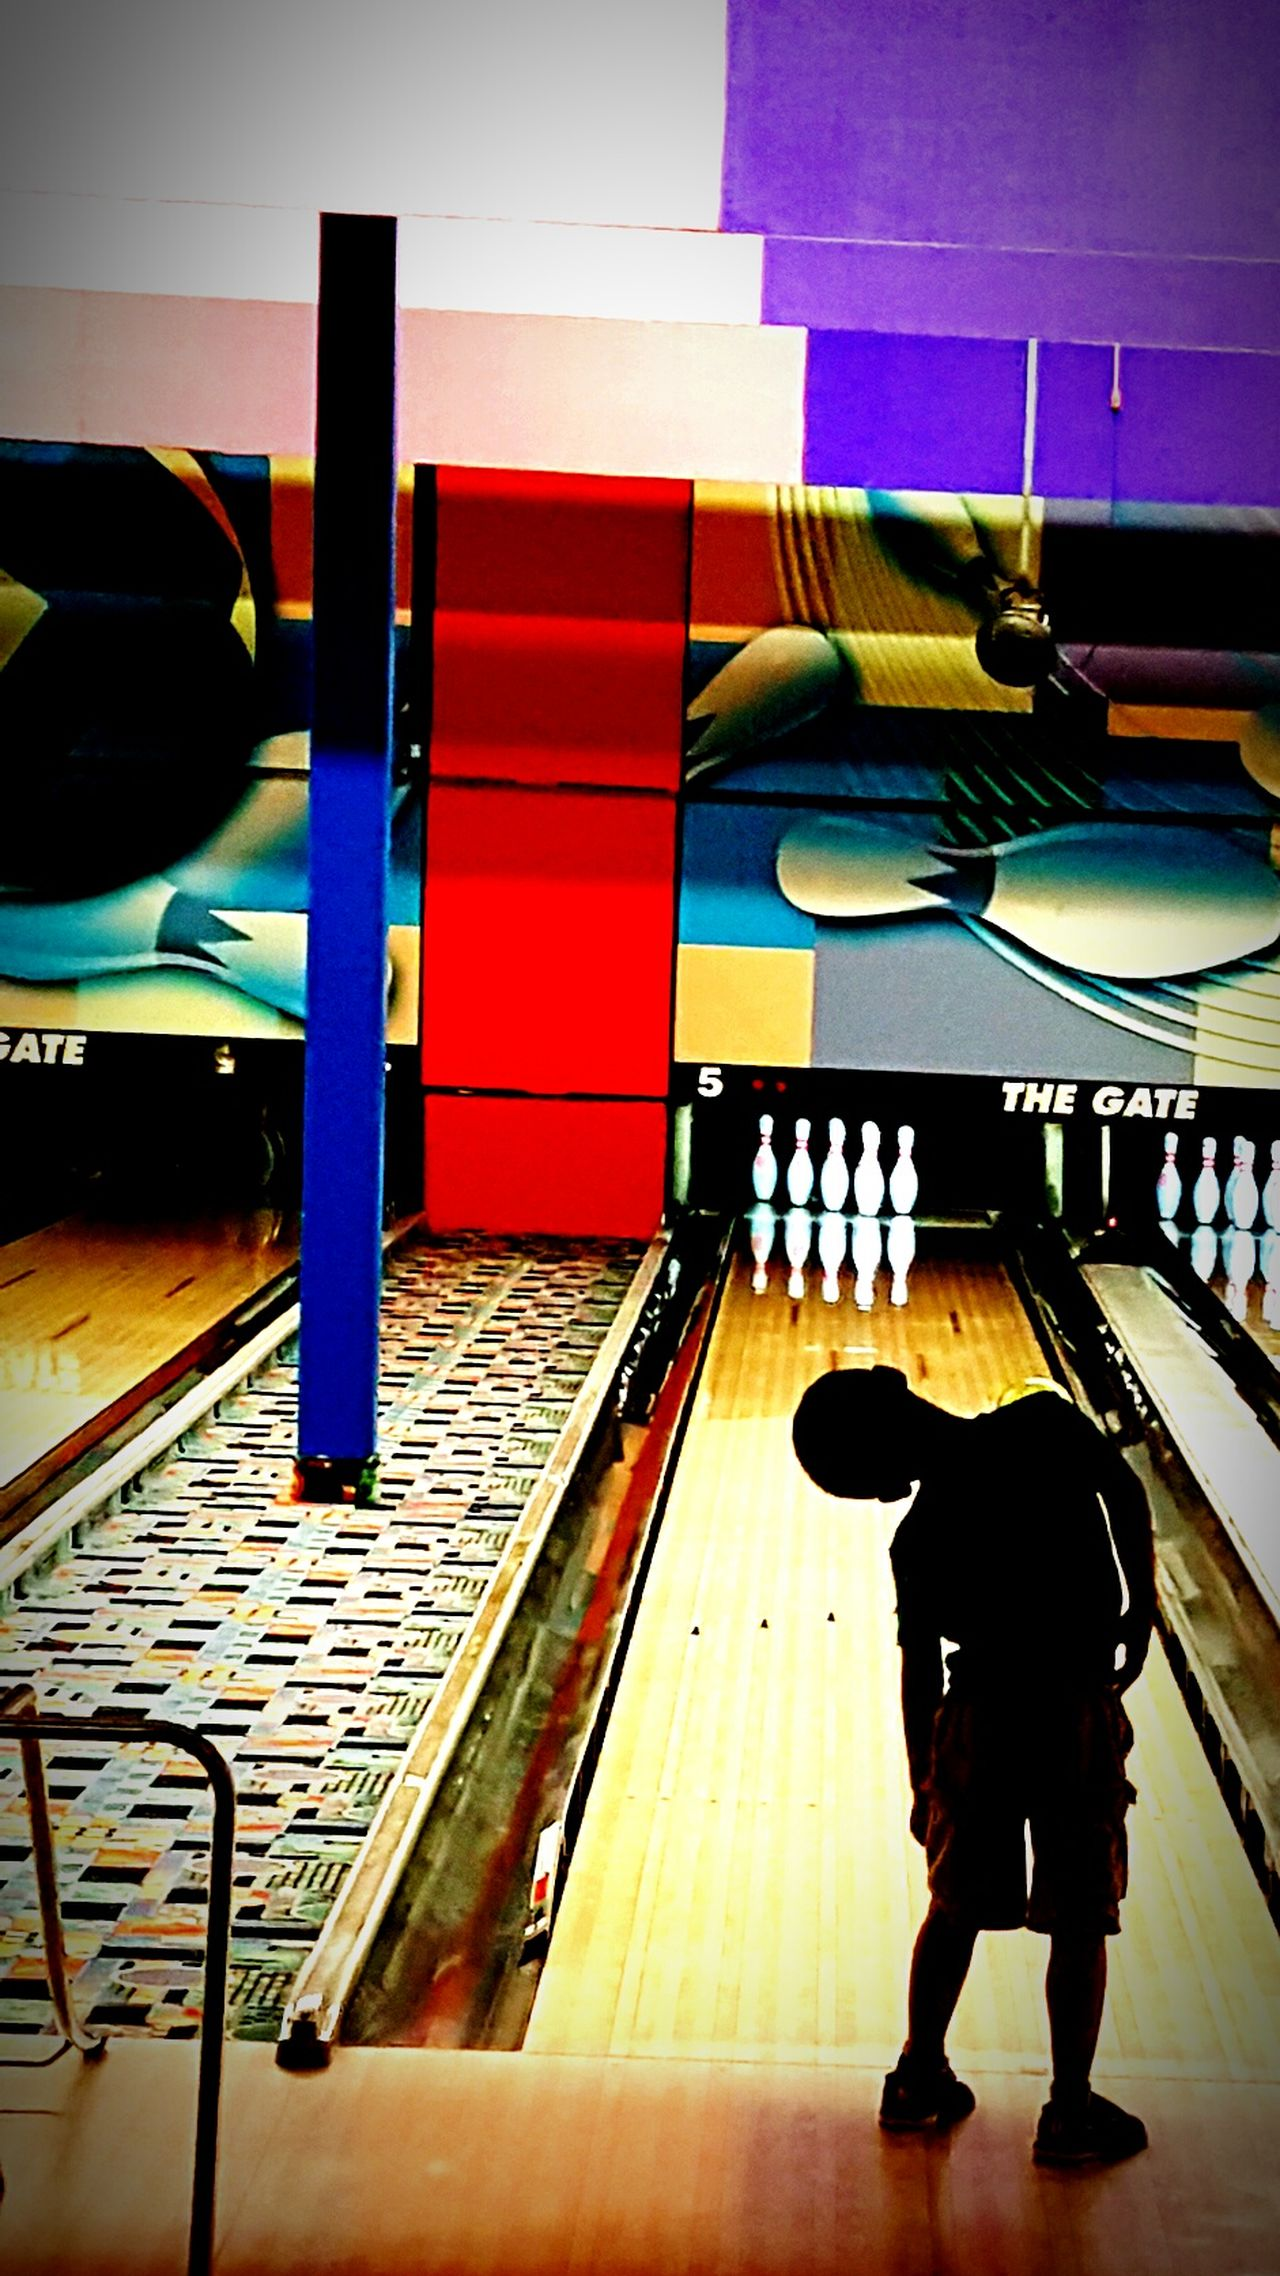 Real People Full Length One Person Silhouette Littleboy Bowling Alley Curiosity Leaning